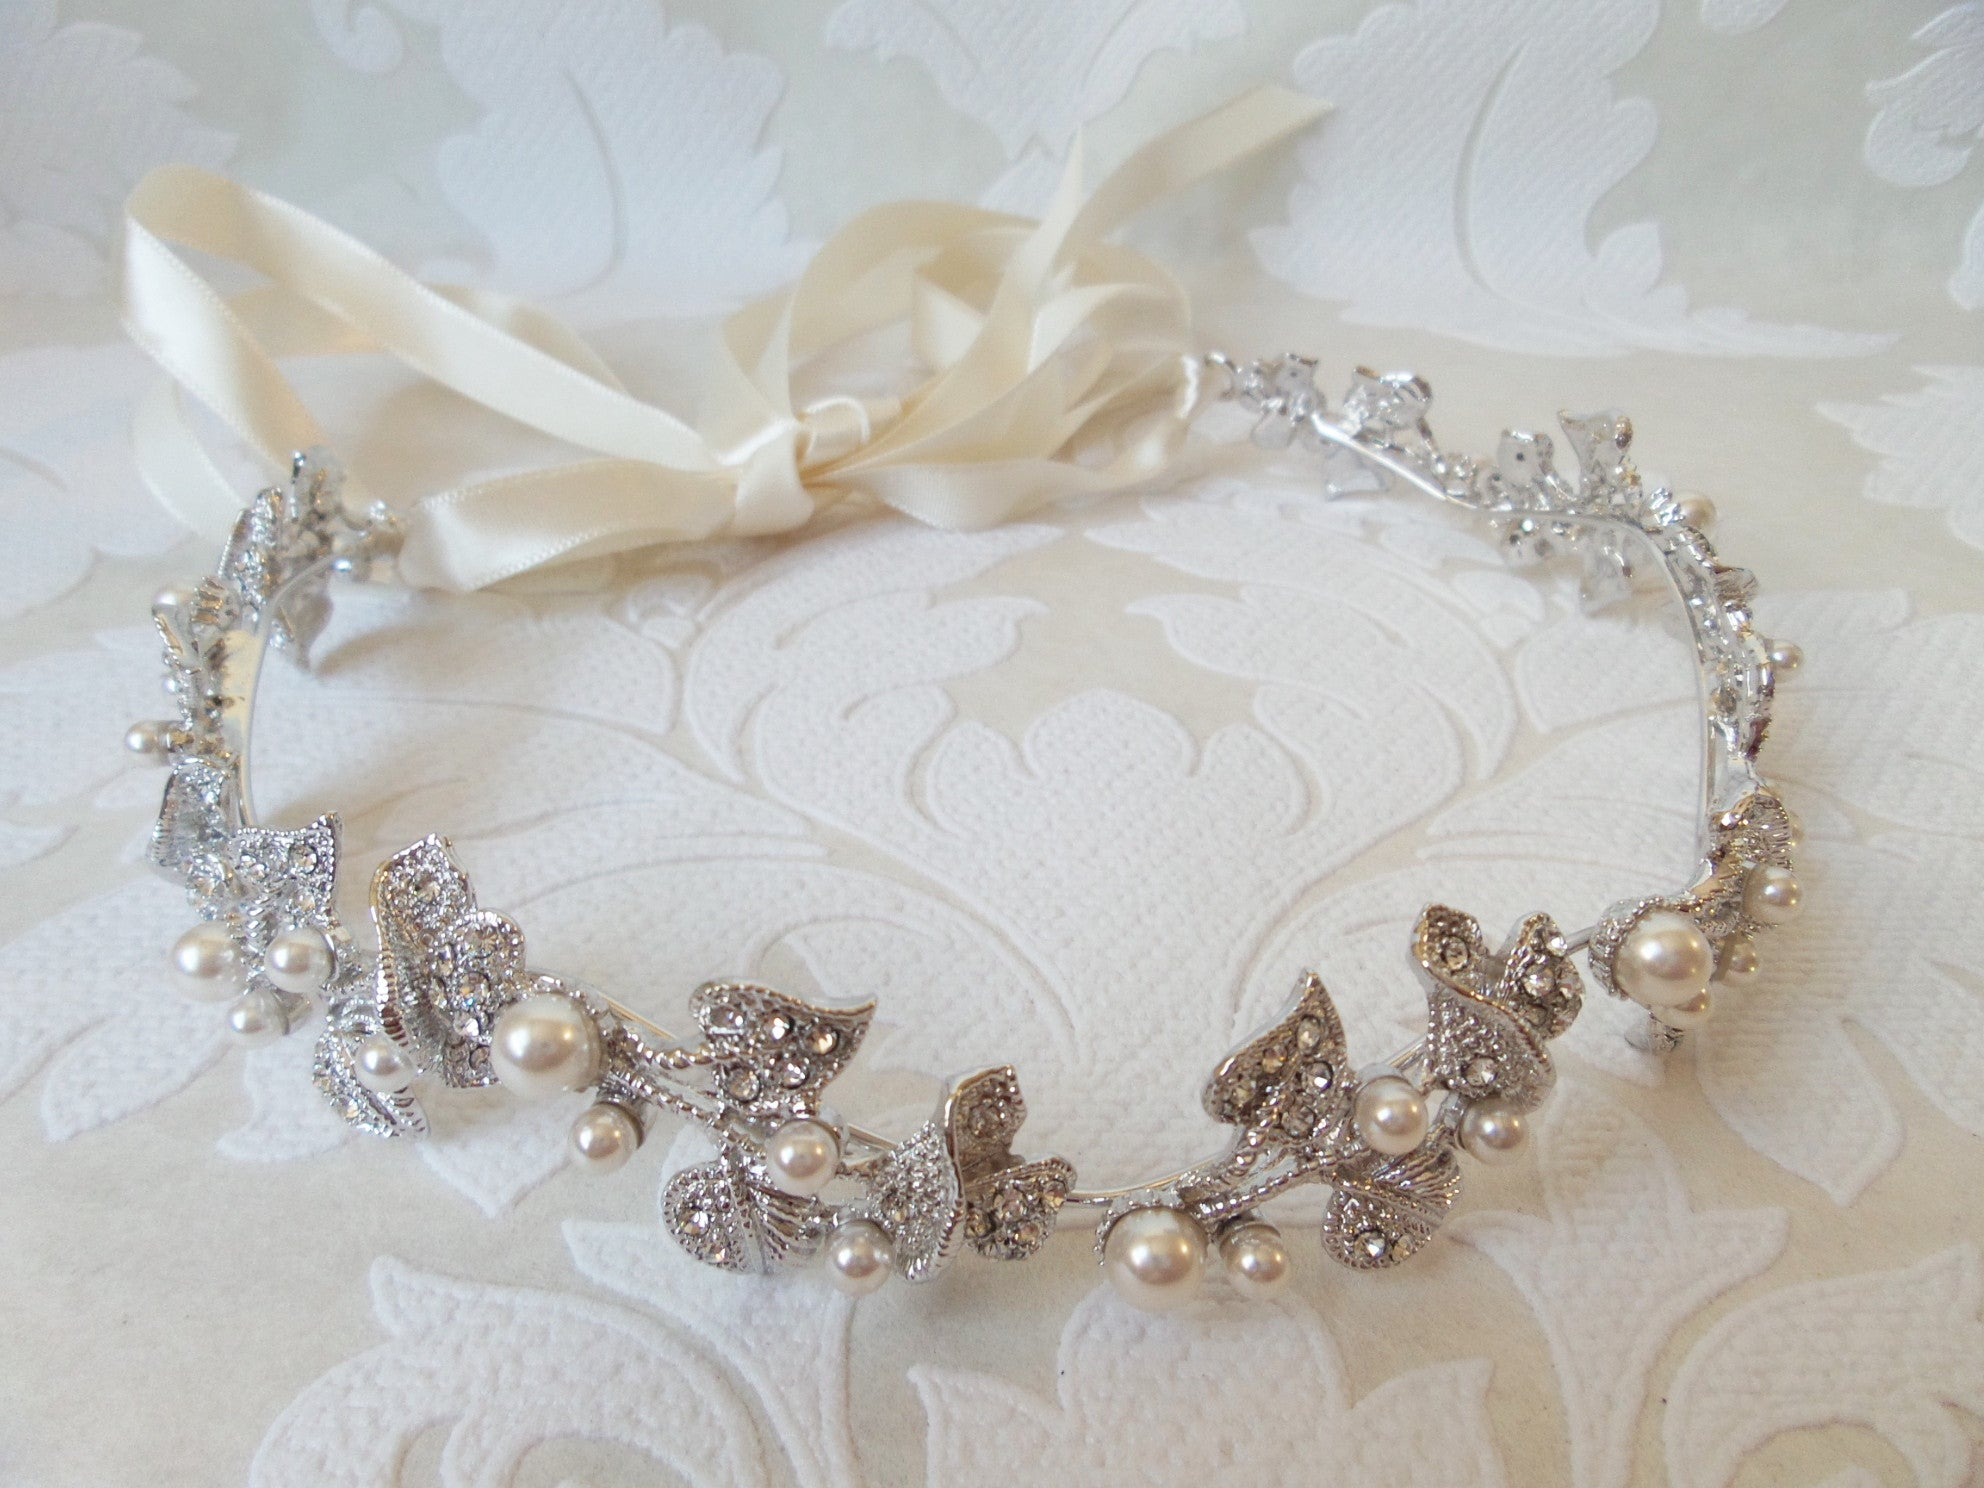 Rose Vine Bridal Headpiece with Flexible Headband and Ribbon Tie for Vintage Wedding